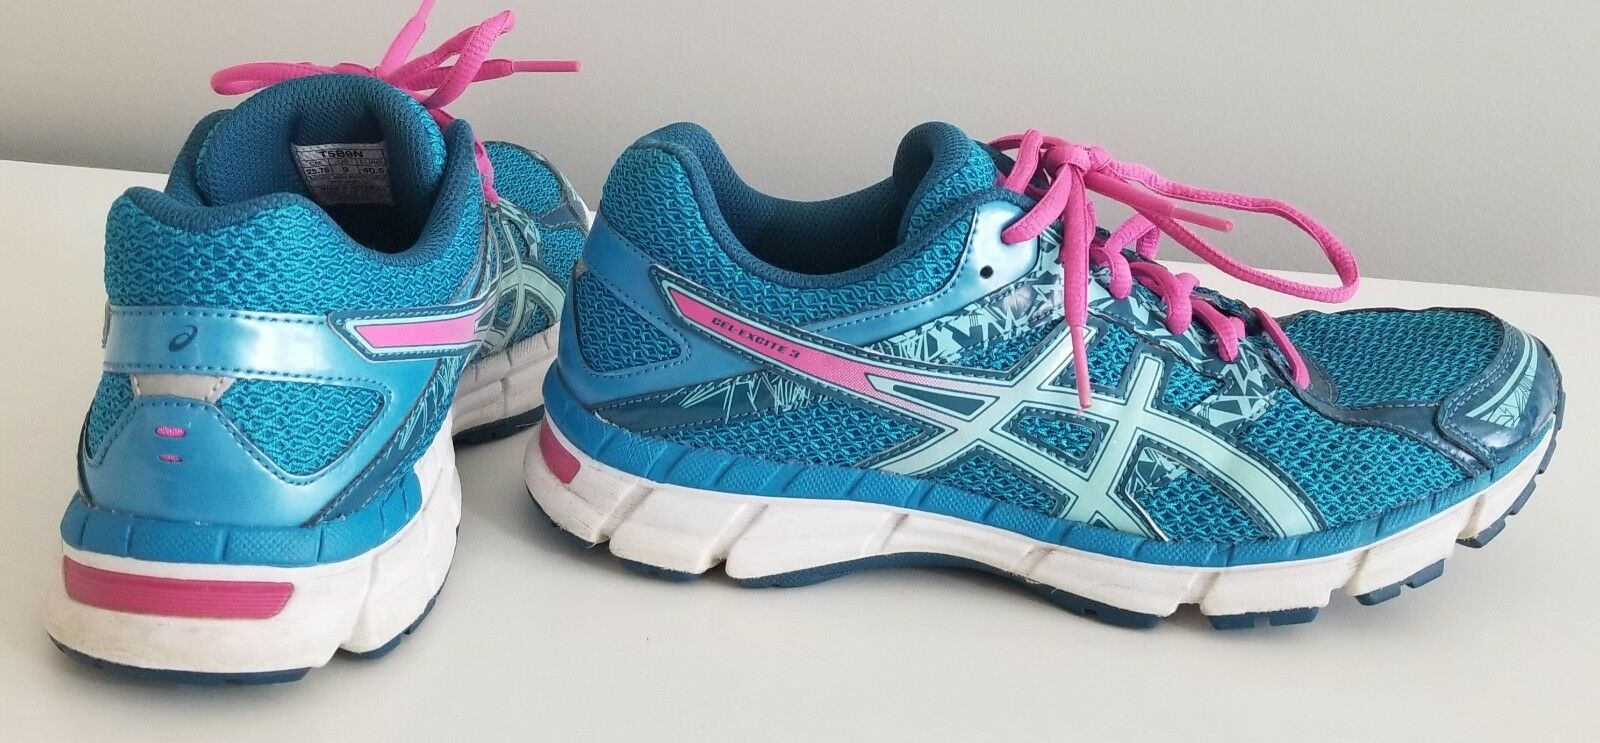 Asics Women's Gel‑Excite 3 Running Shoes Blue/Pink Comfortable Wild casual shoes